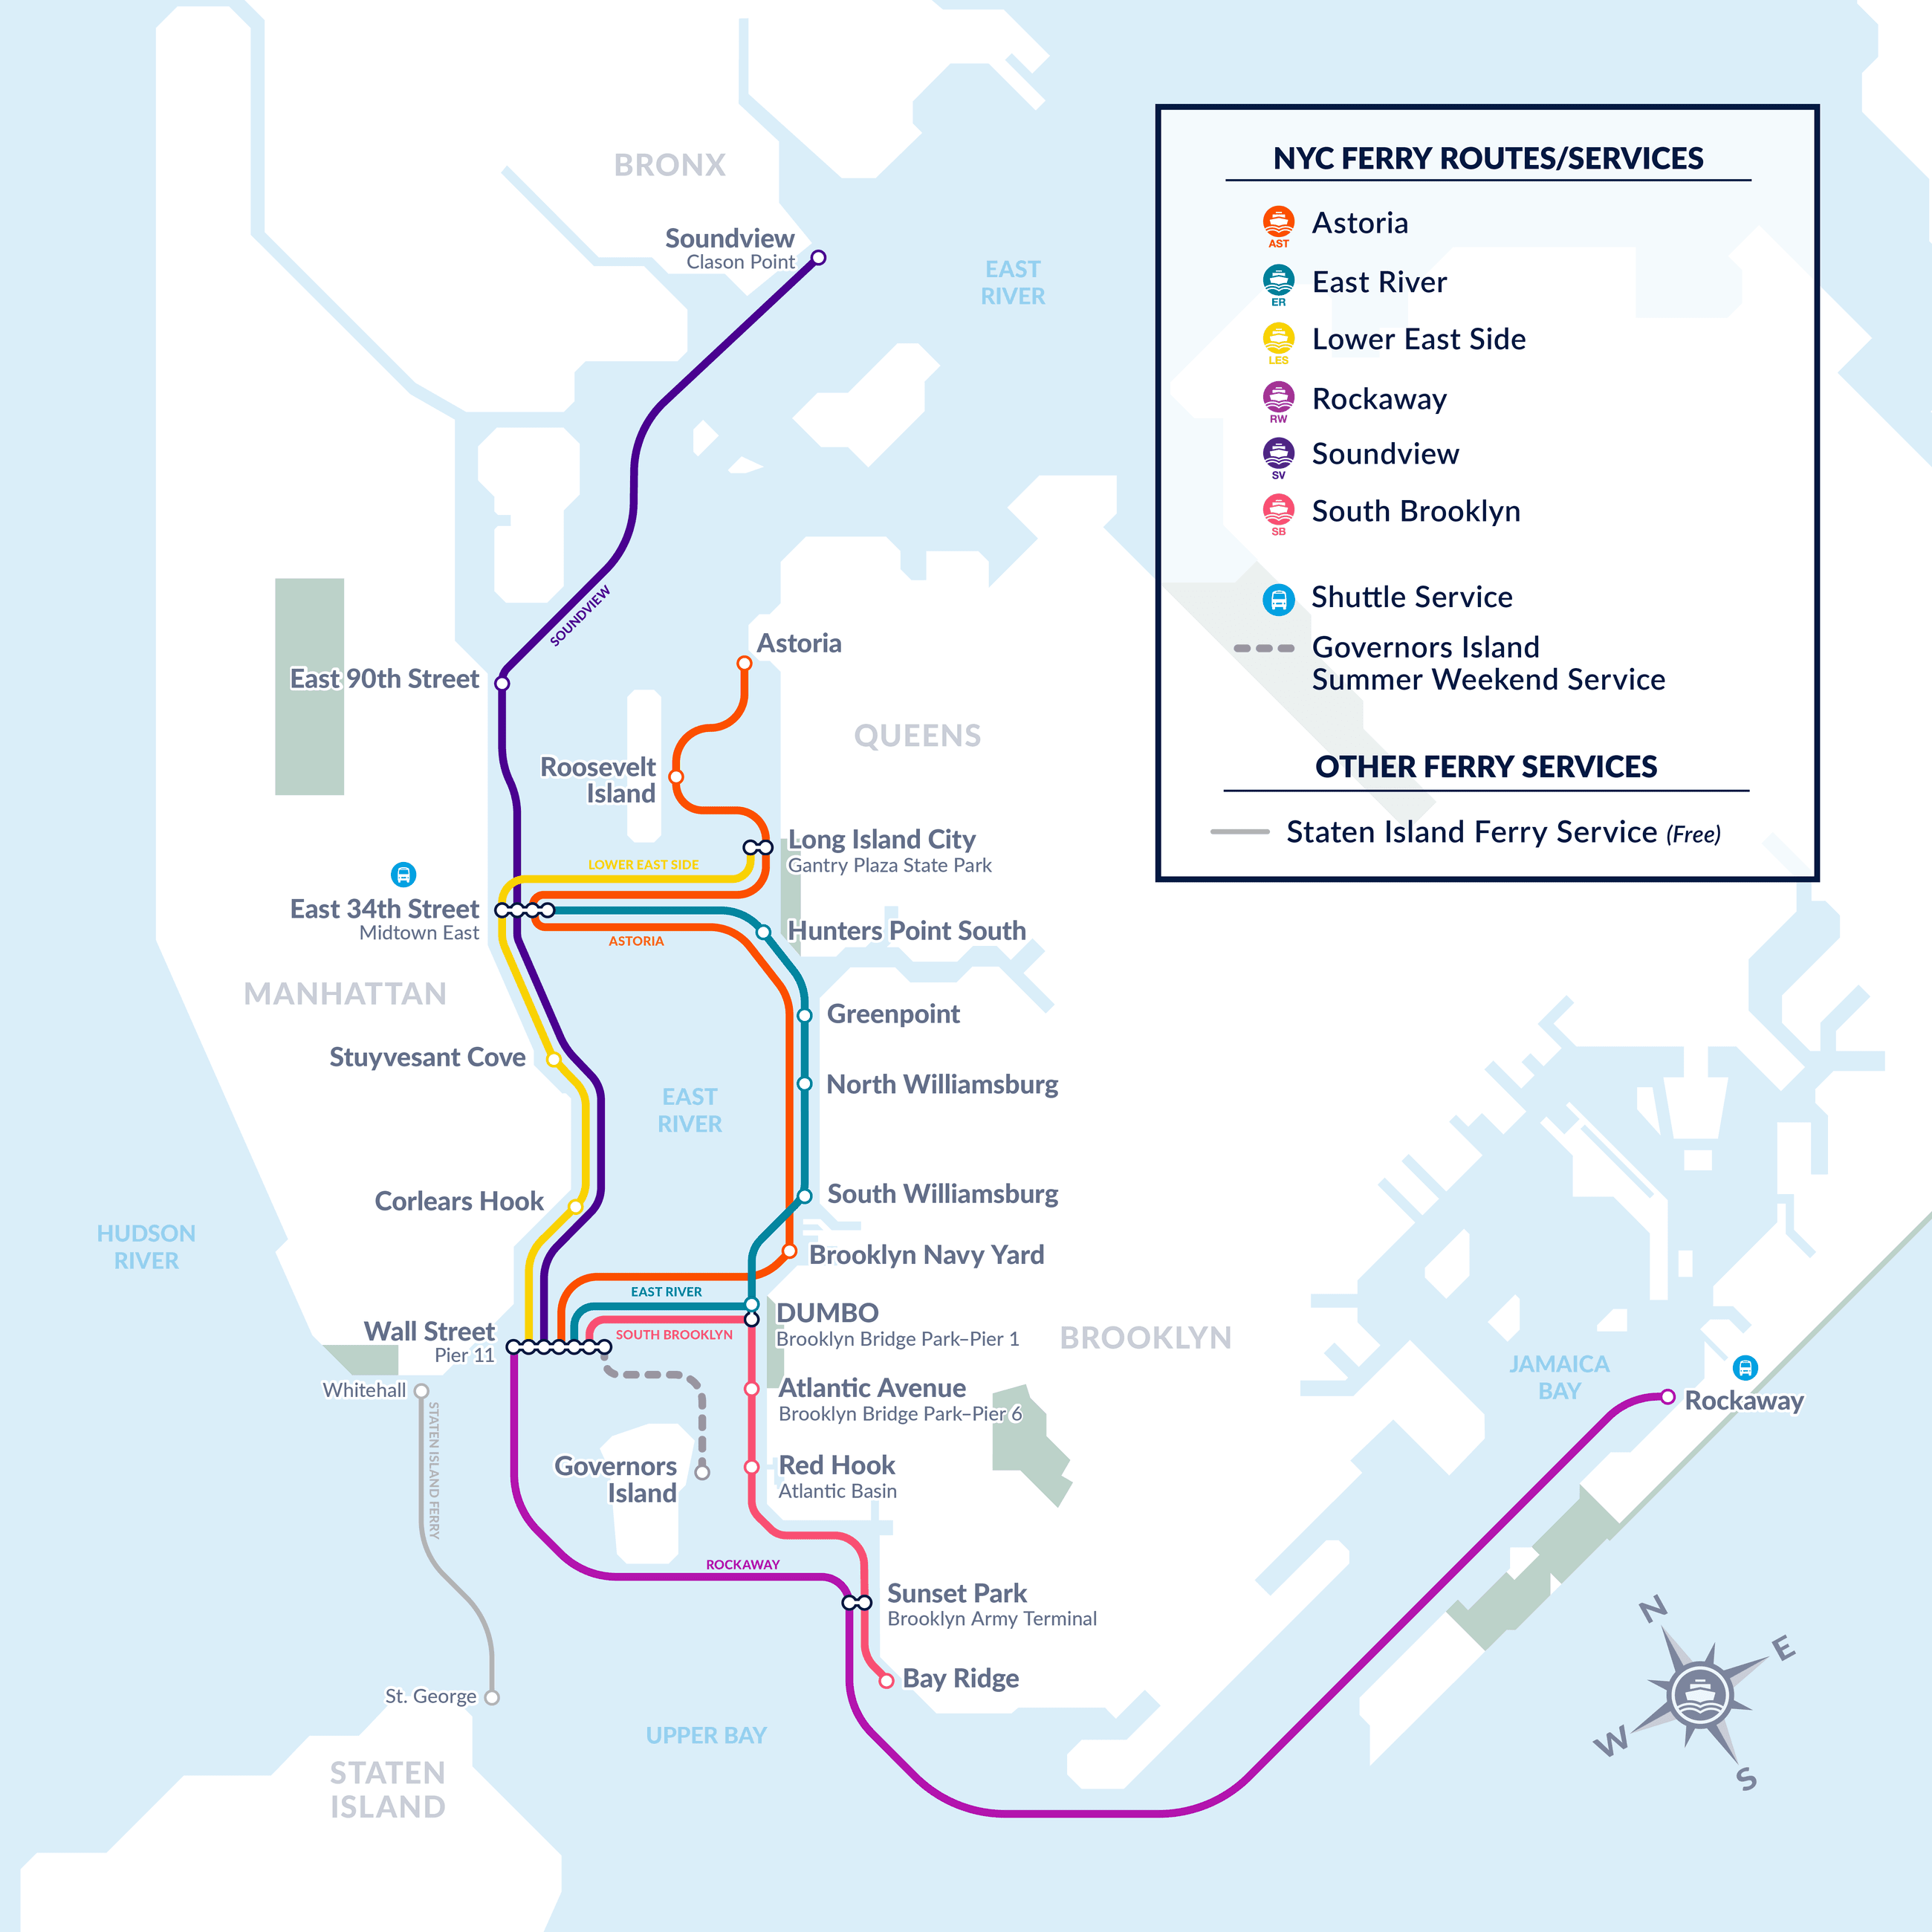 NYCF-Map-2019-2_Current-Map